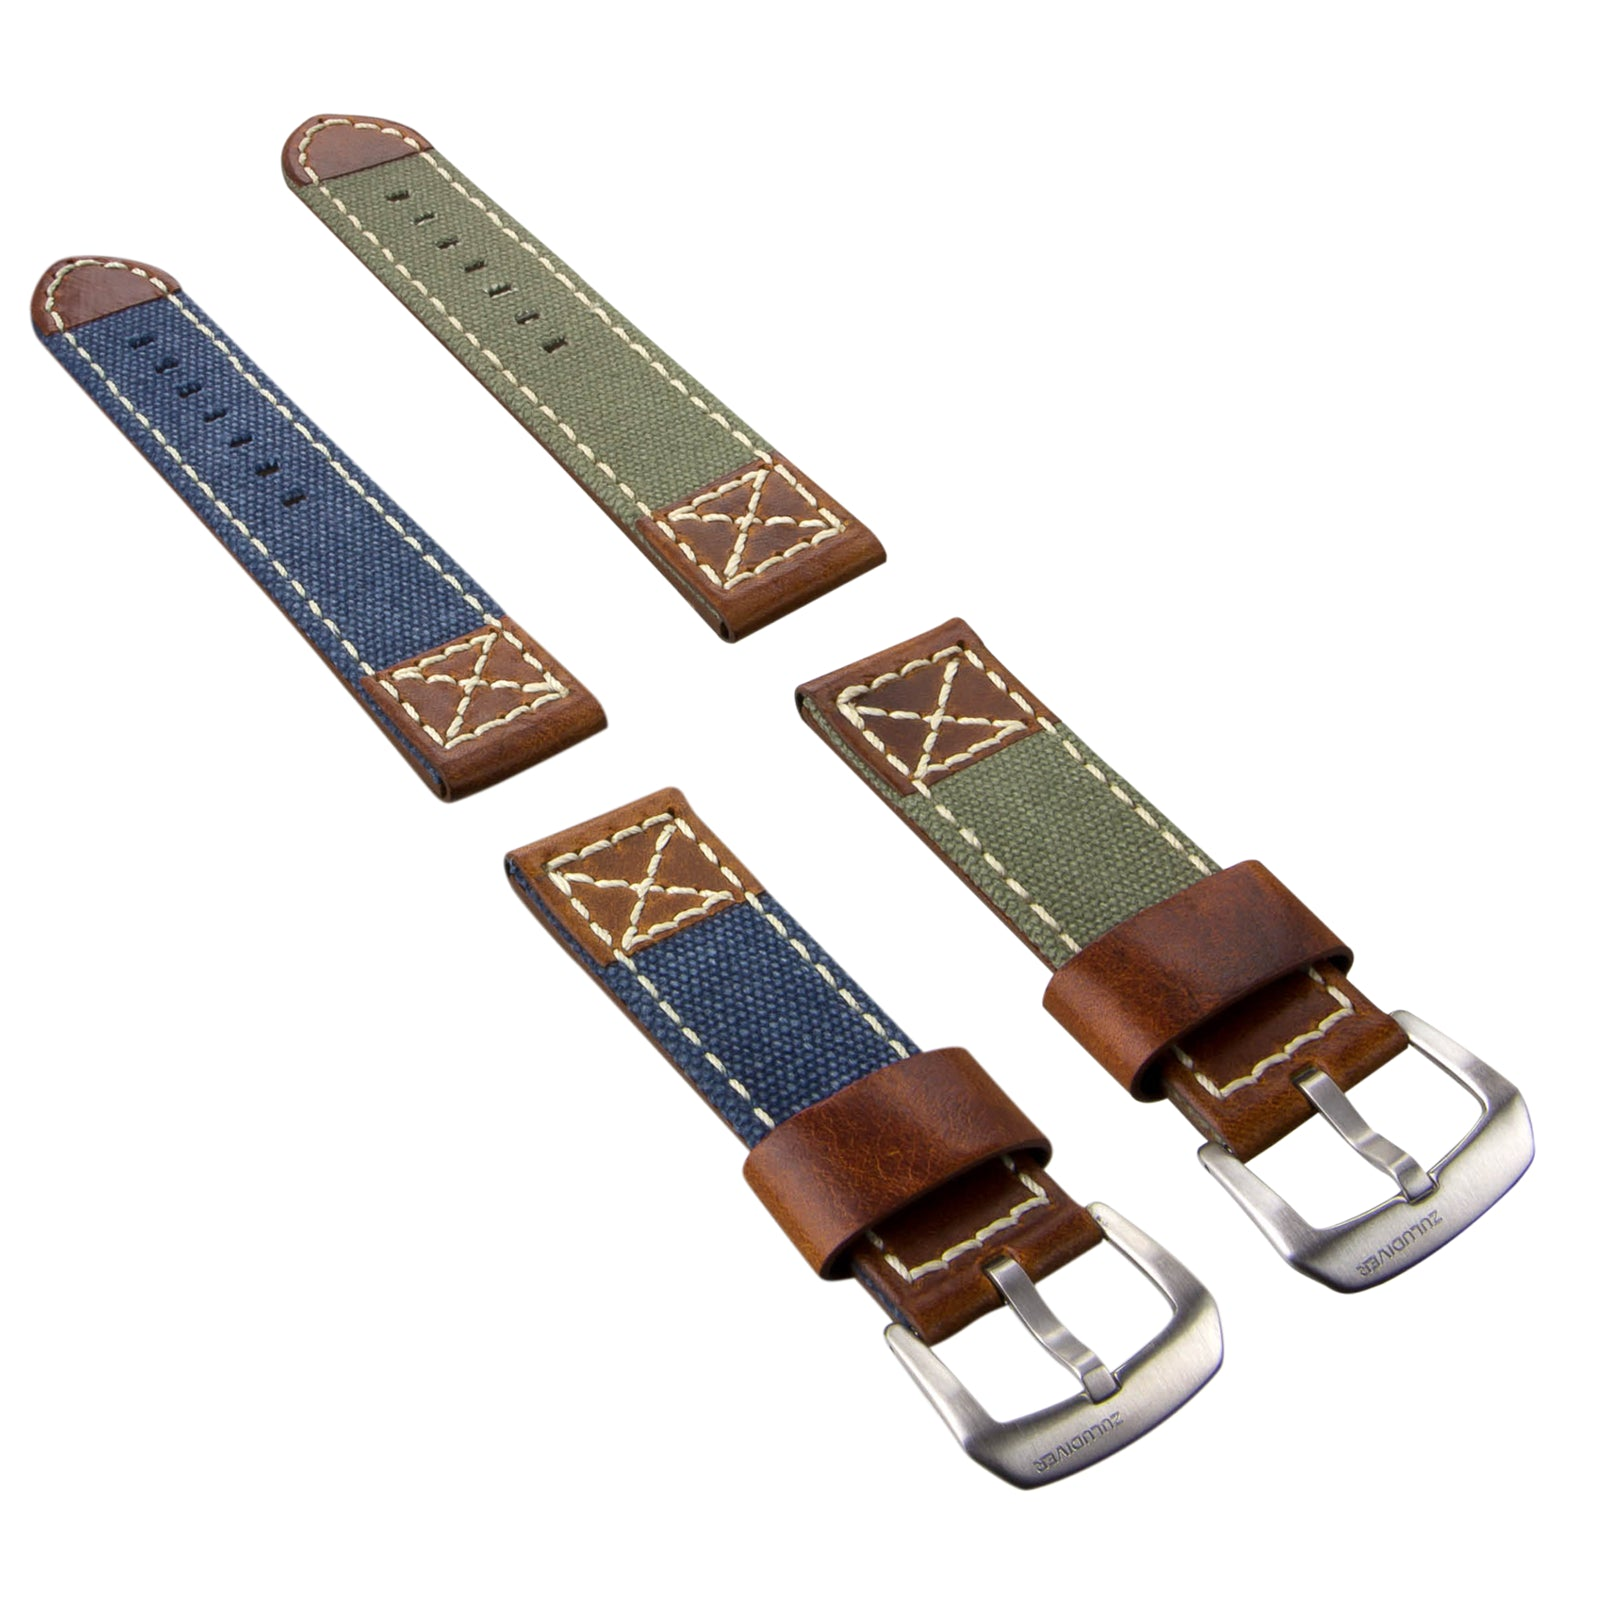 ZULUDIVER Canvas Denim Vintage Italian Leather Watch Strap